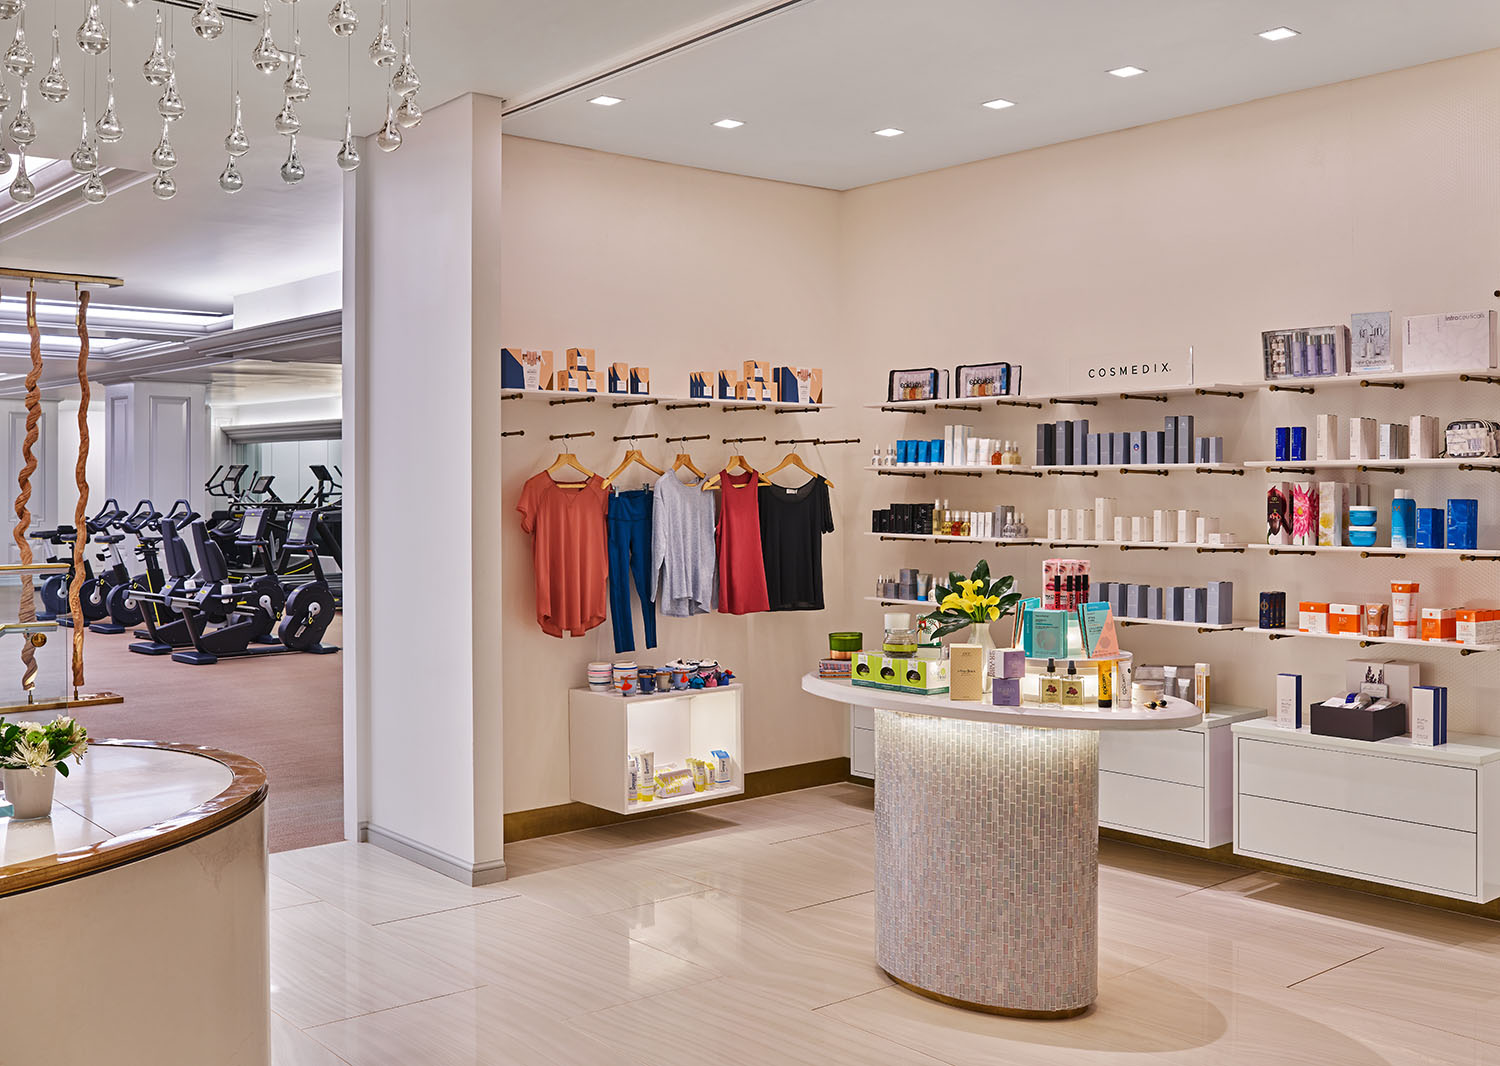 The spa's full-service retail area.